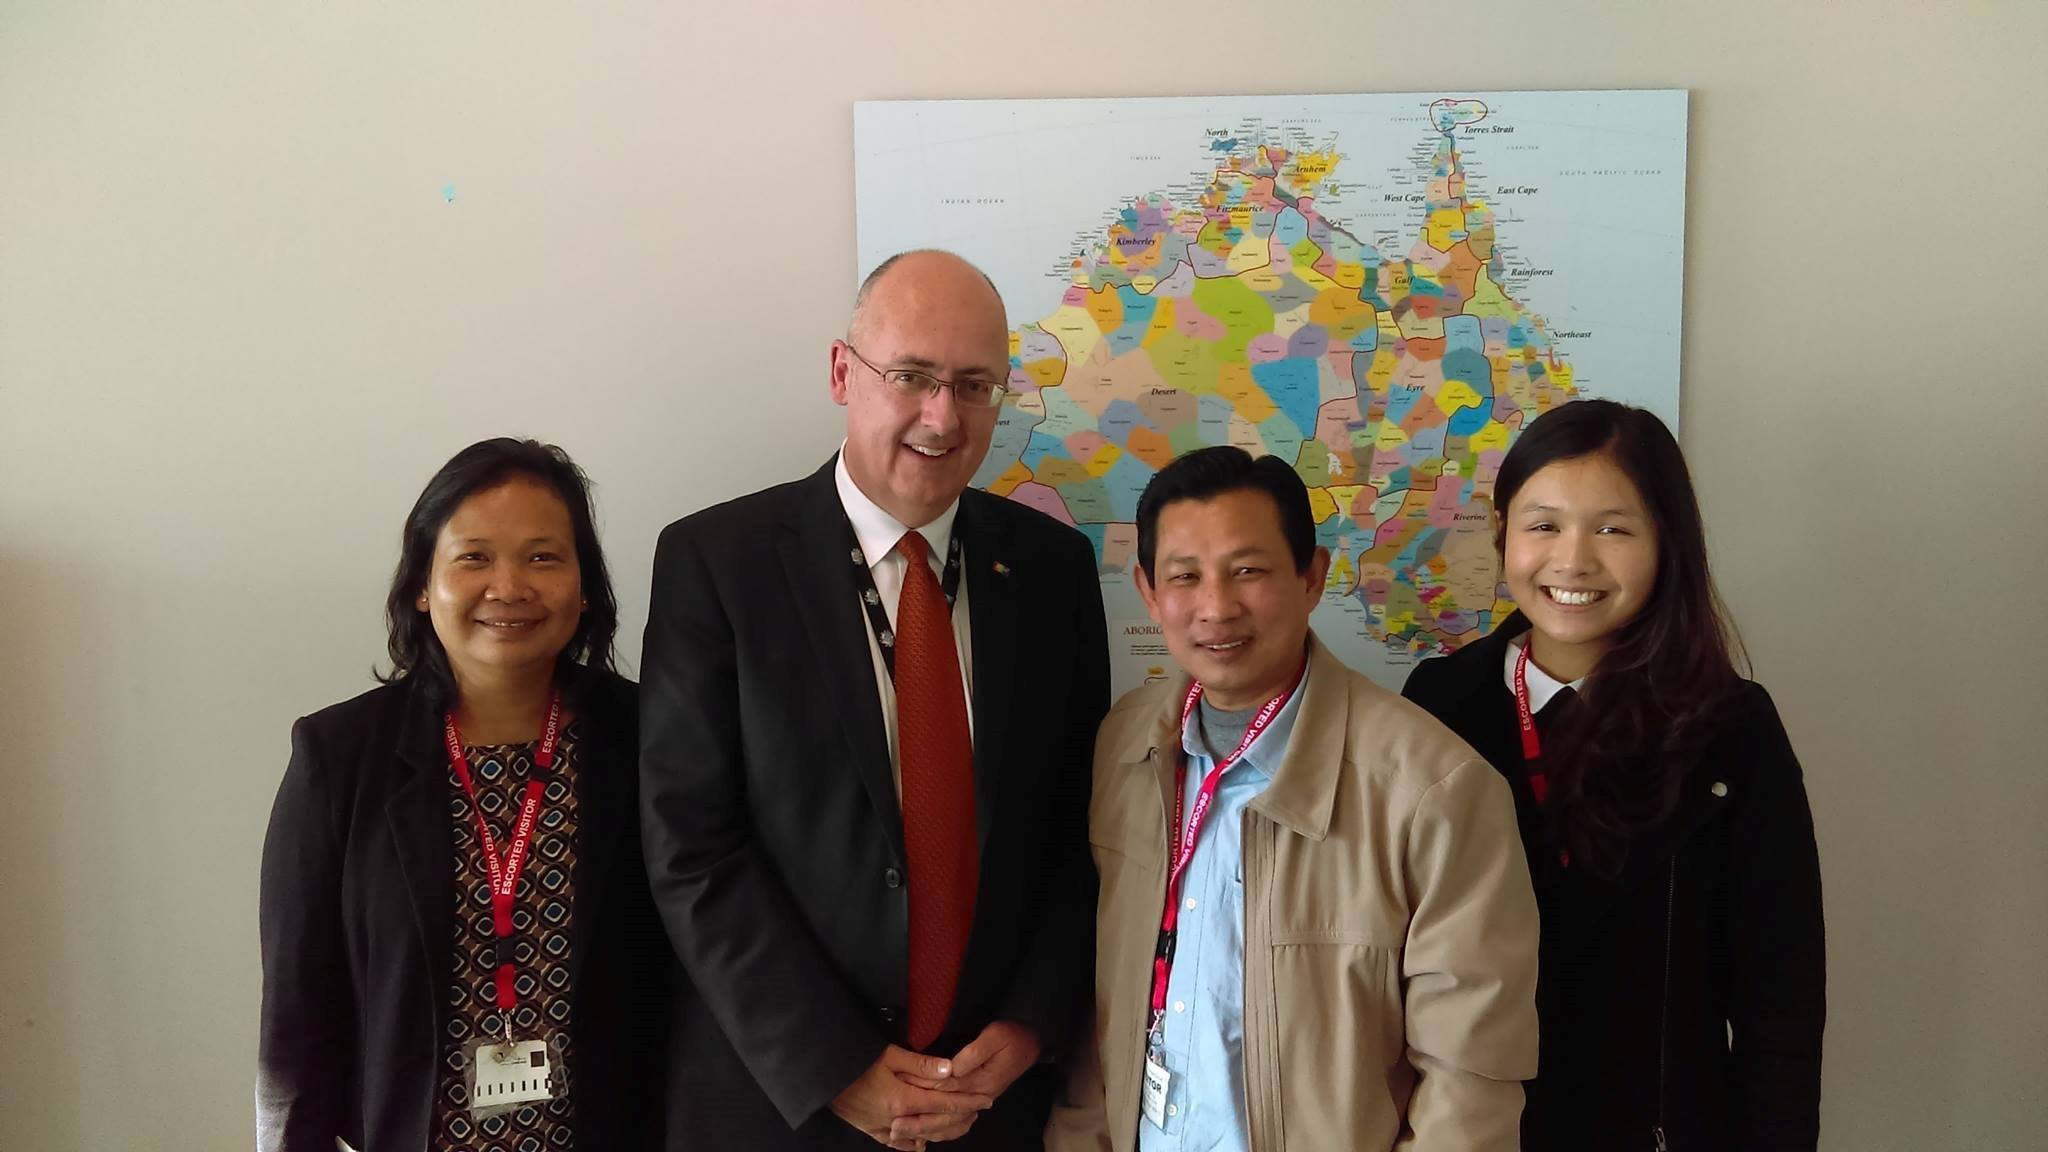 KKF reports about Khmer Krom issues to Australian Government